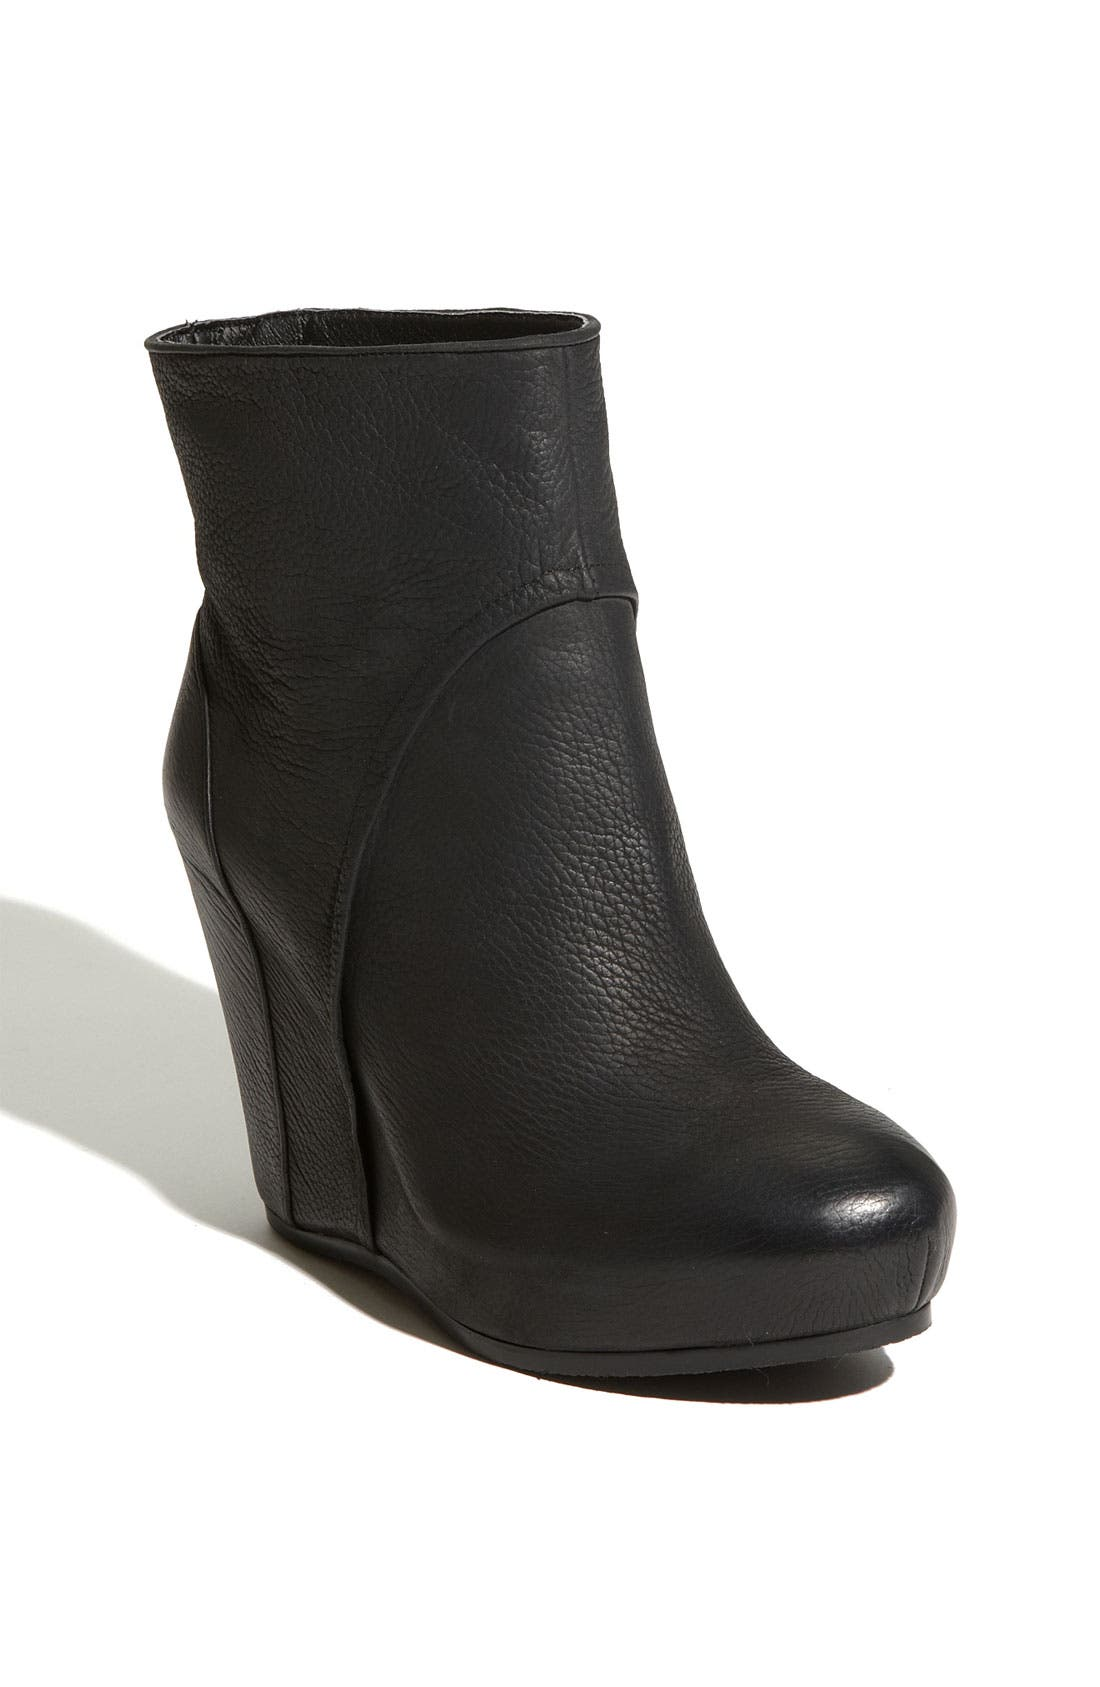 Alternate Image 1 Selected - Trouvé 'World' Wedge Ankle Boot